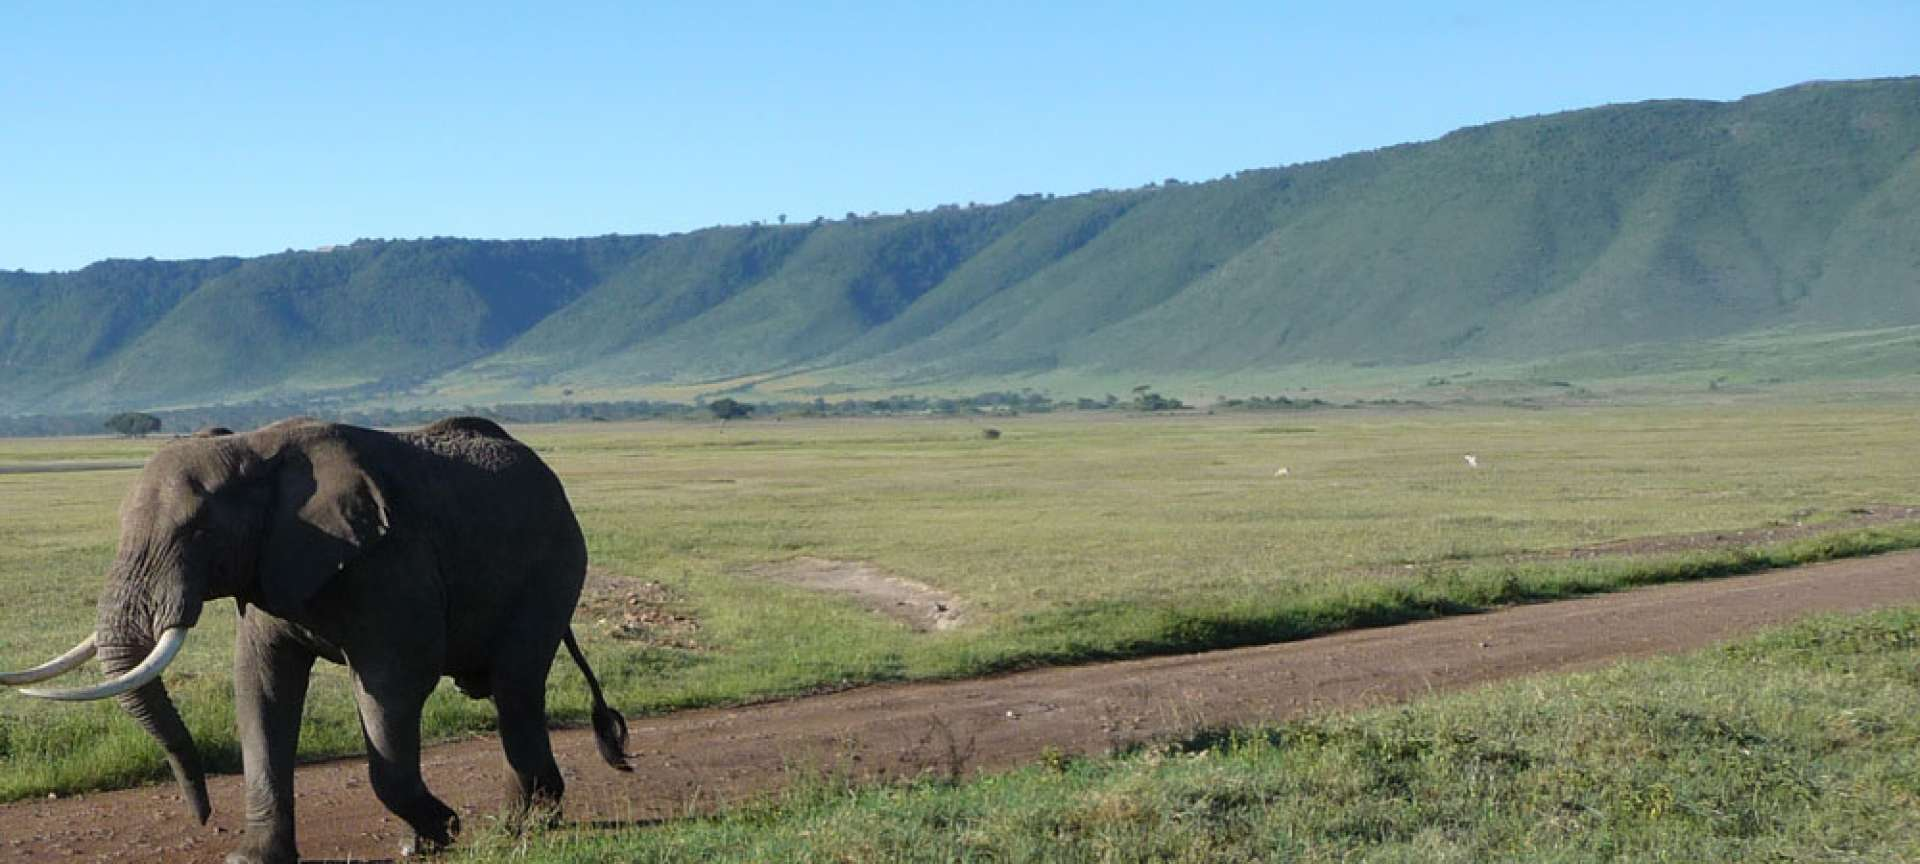 An elephant in Tanzania strikes an impressive contrast against the landscape